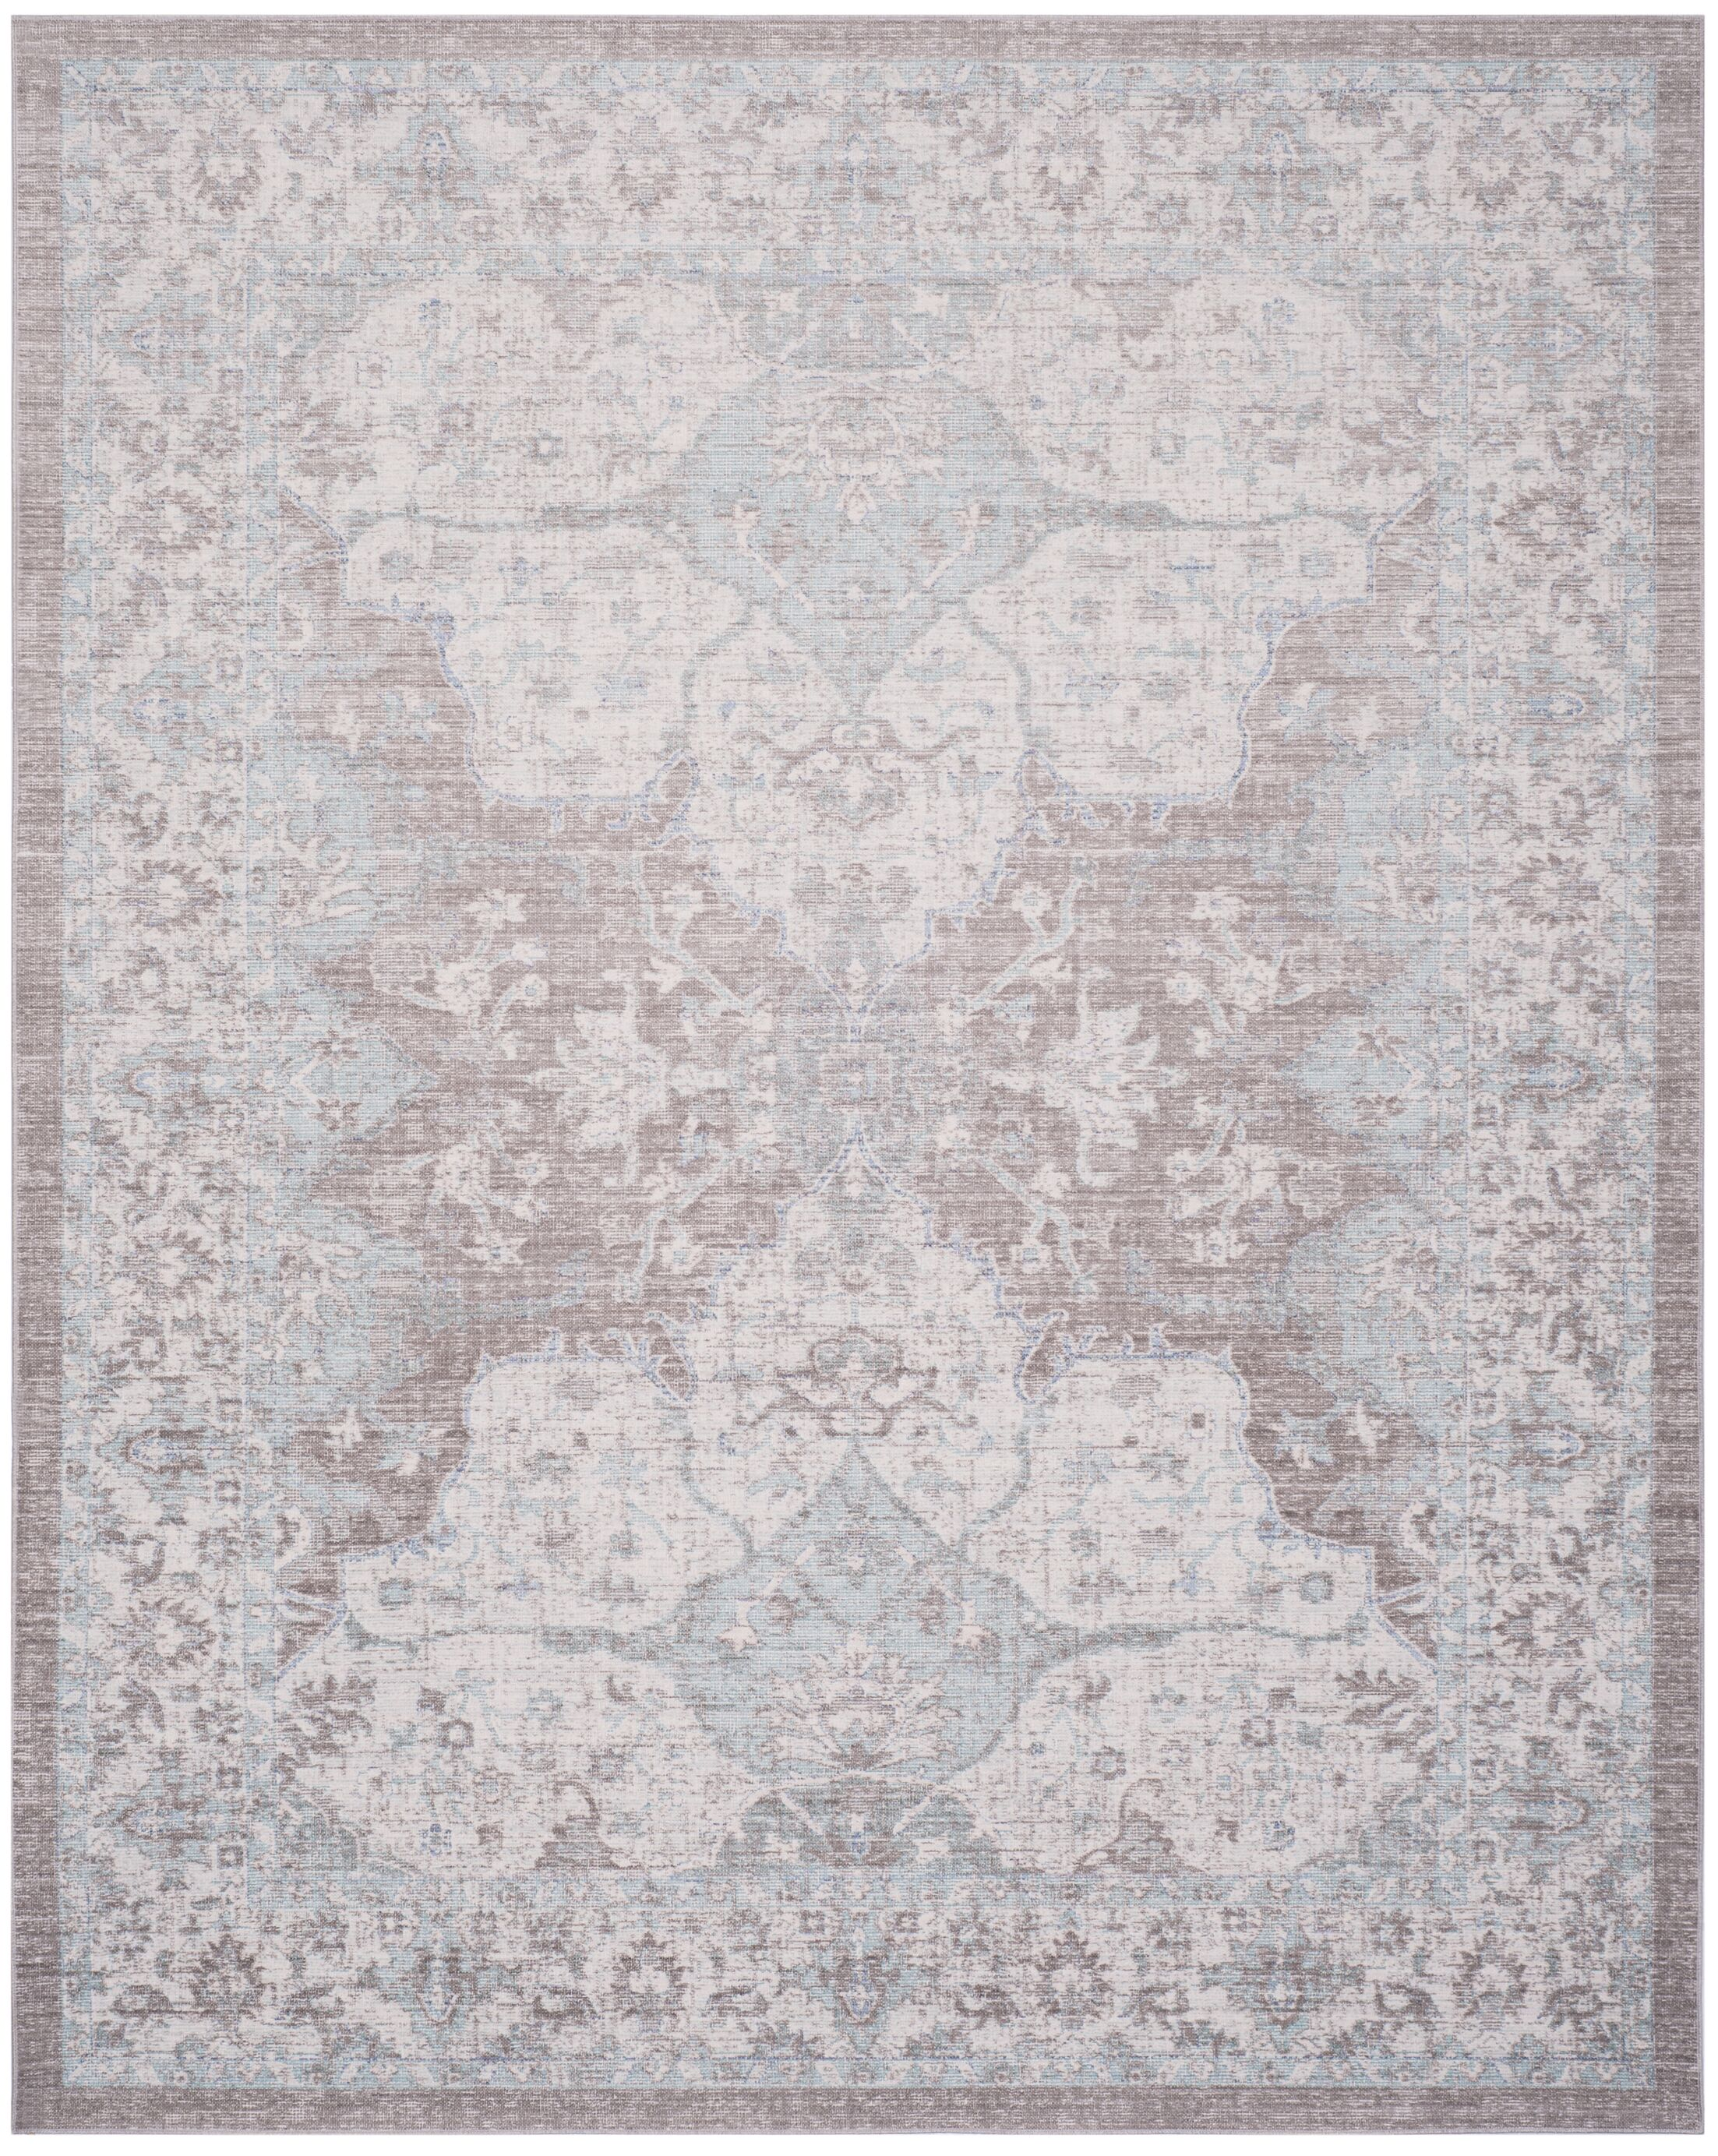 Edgehill Light Gray Area Rug Rug Size: Rectangle 8' x 10'